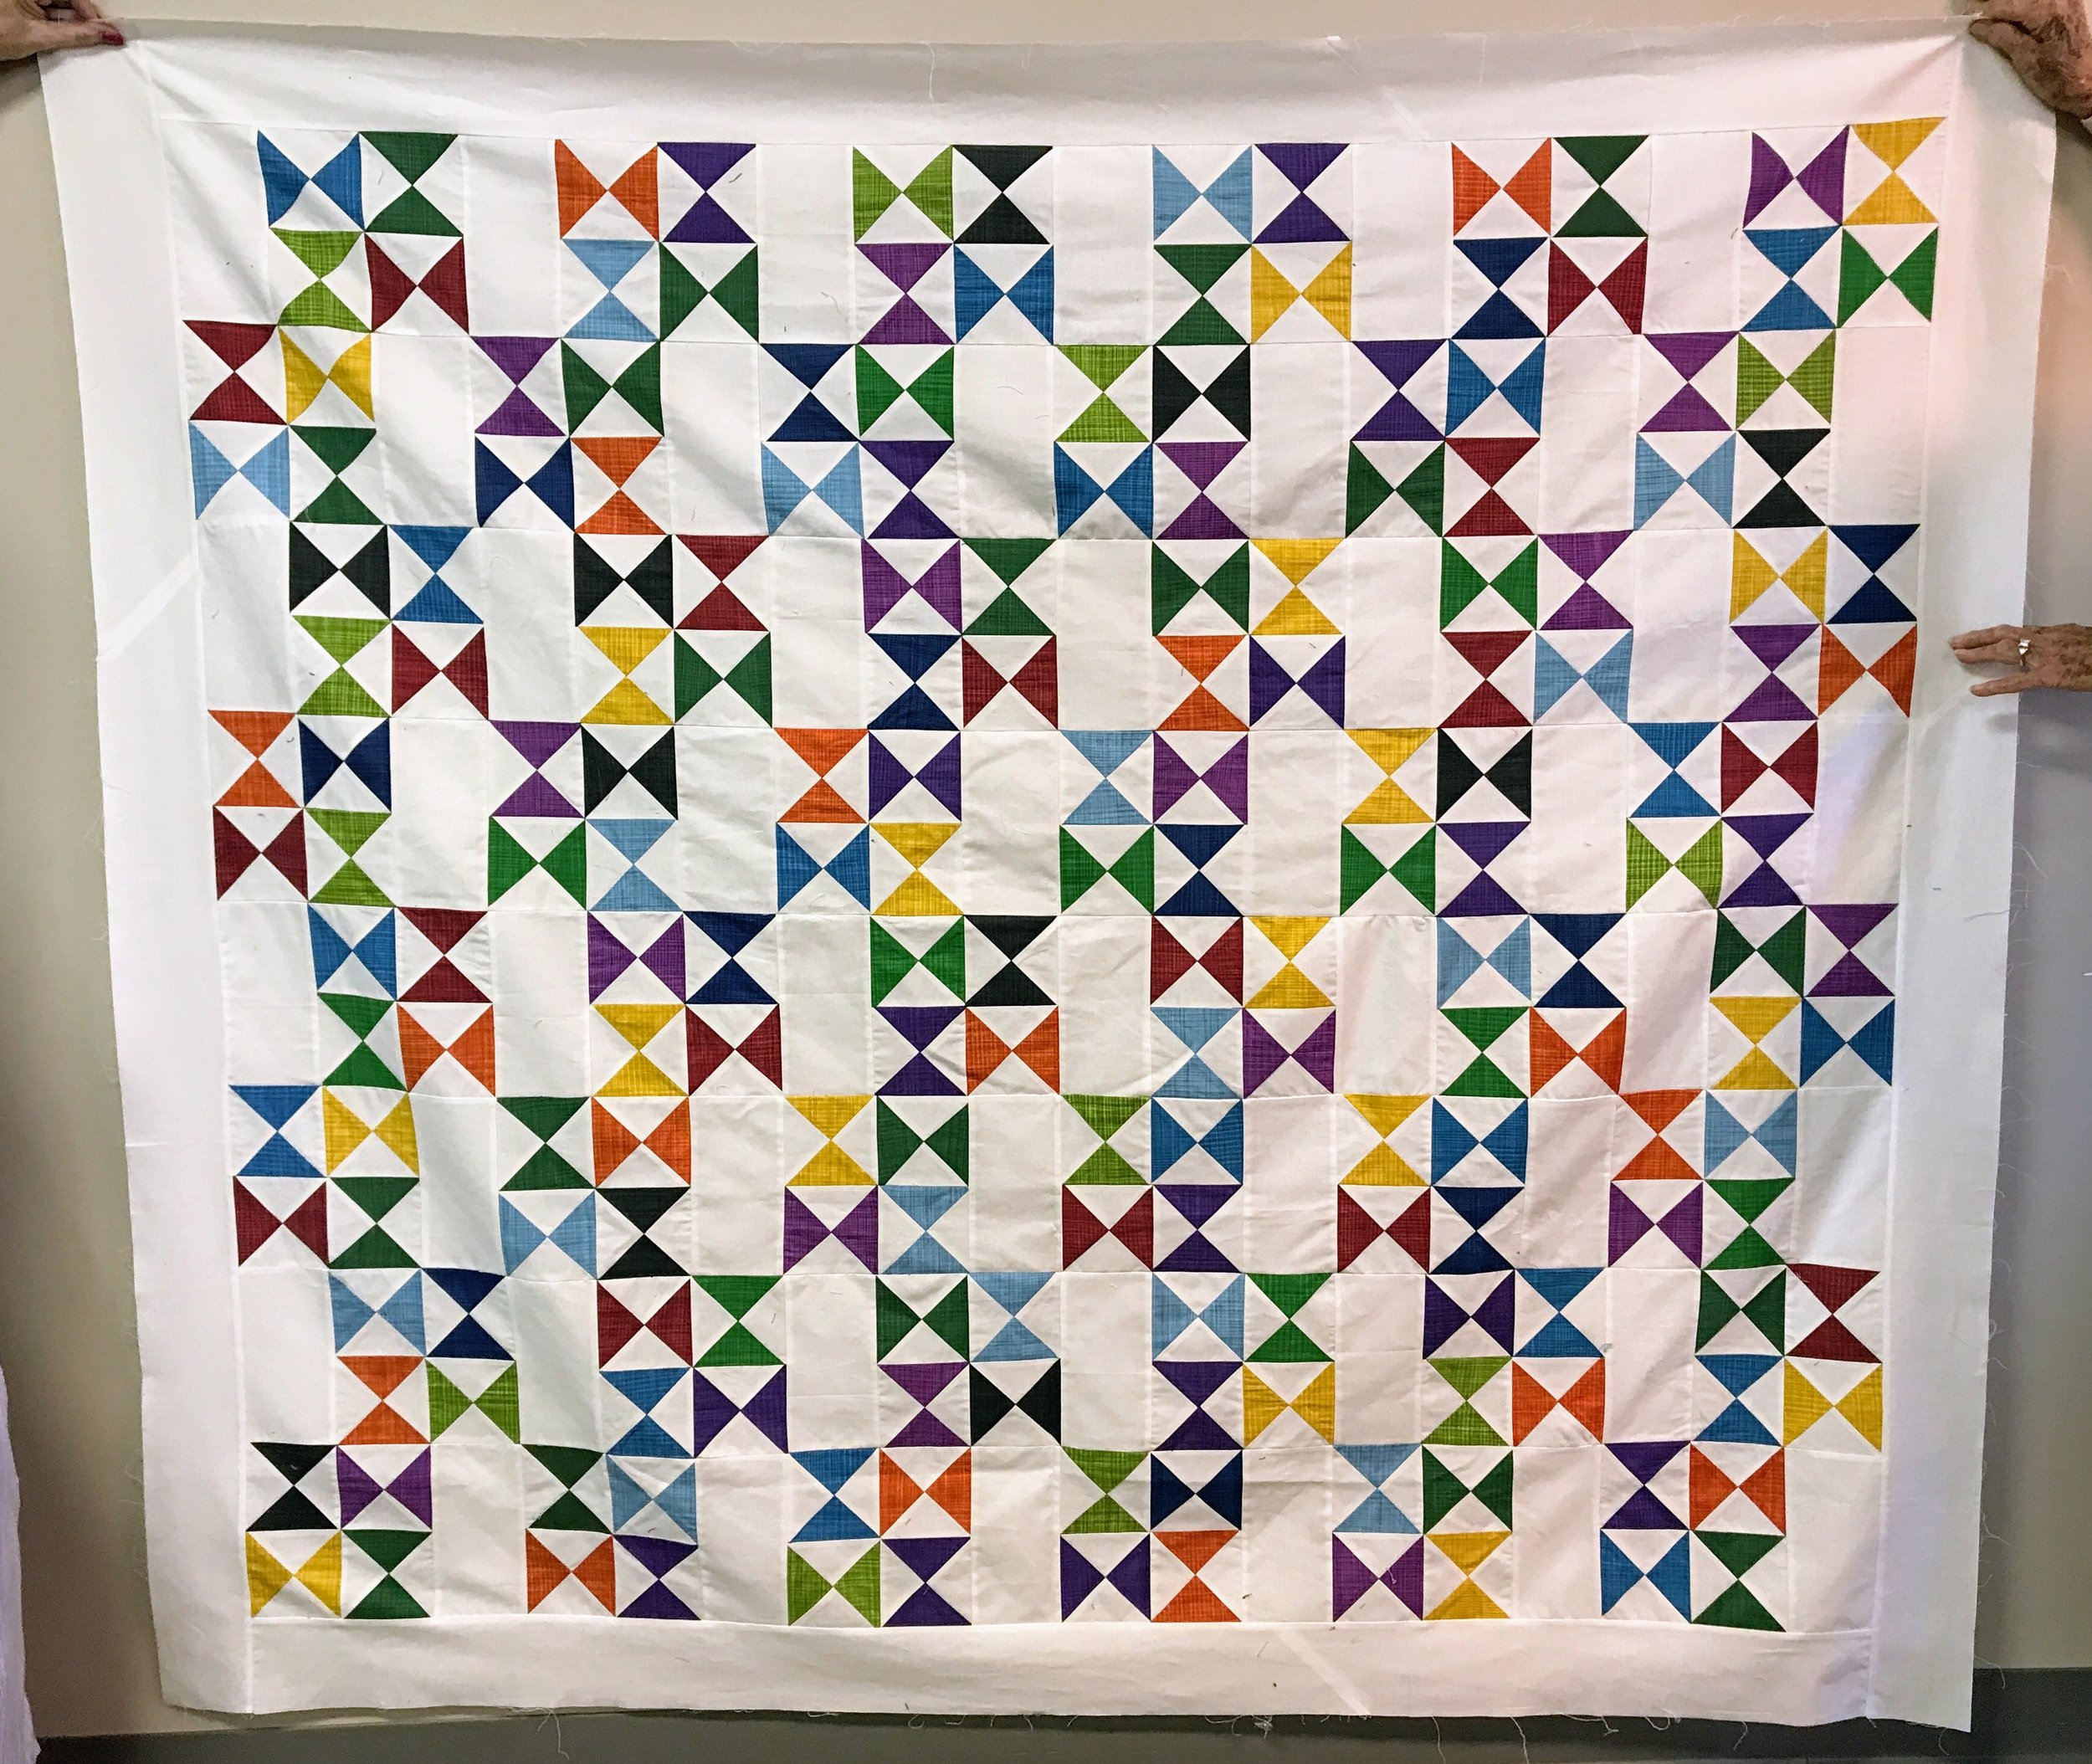 Gerry Haywood pieced this top for a Habitat for Humanity quilt